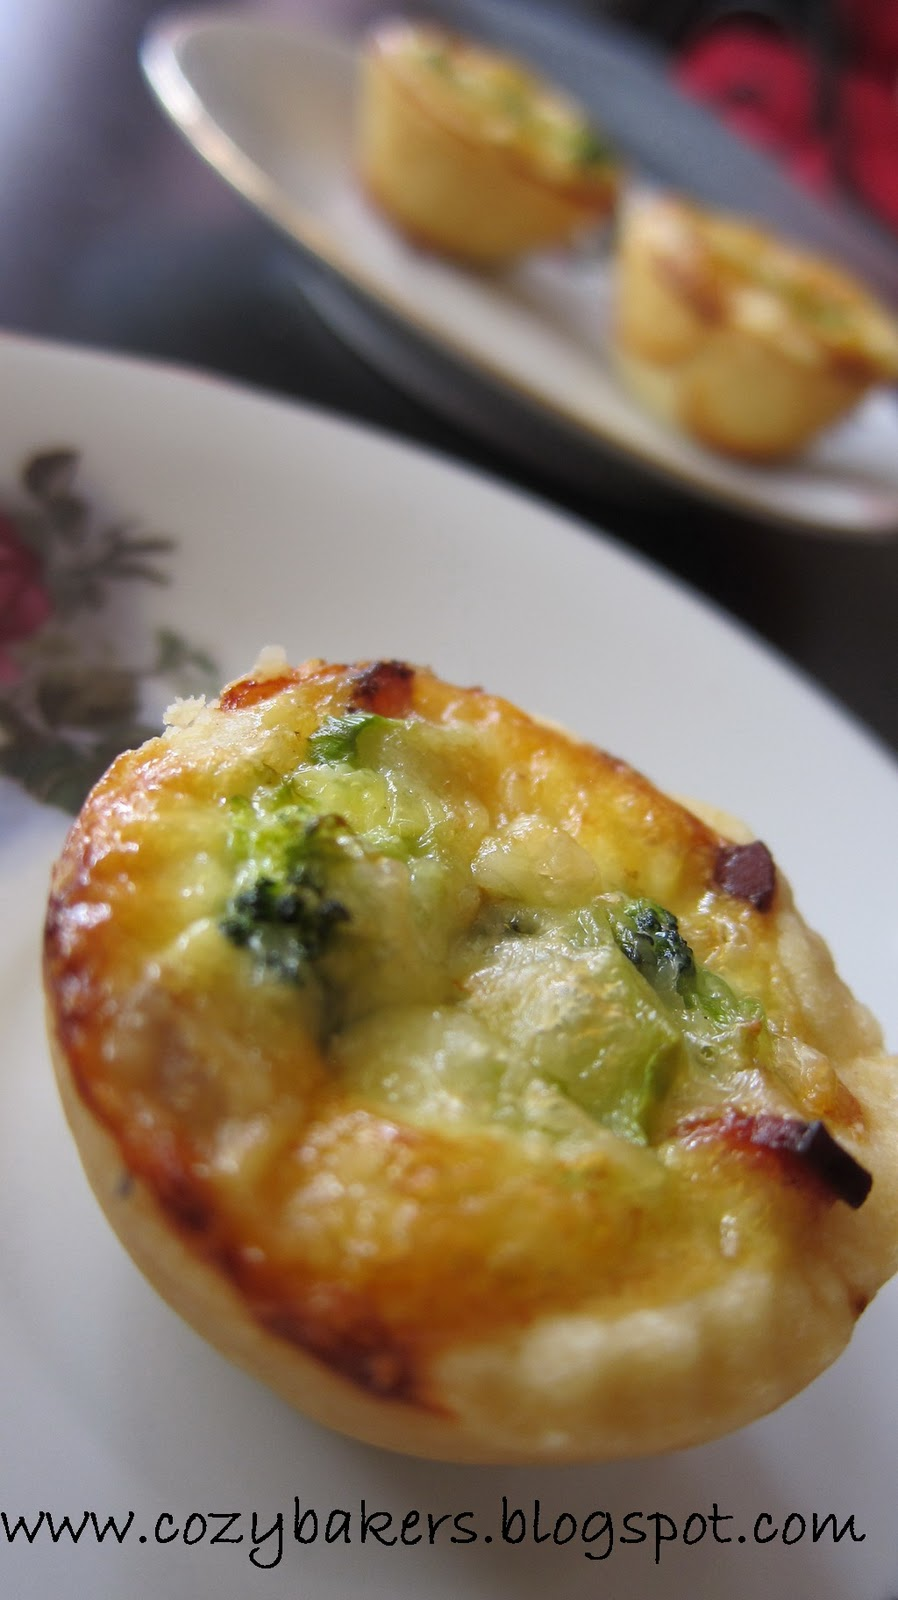 Displaying this delicious Mini Quiche in Pate Brisee crust on my ...